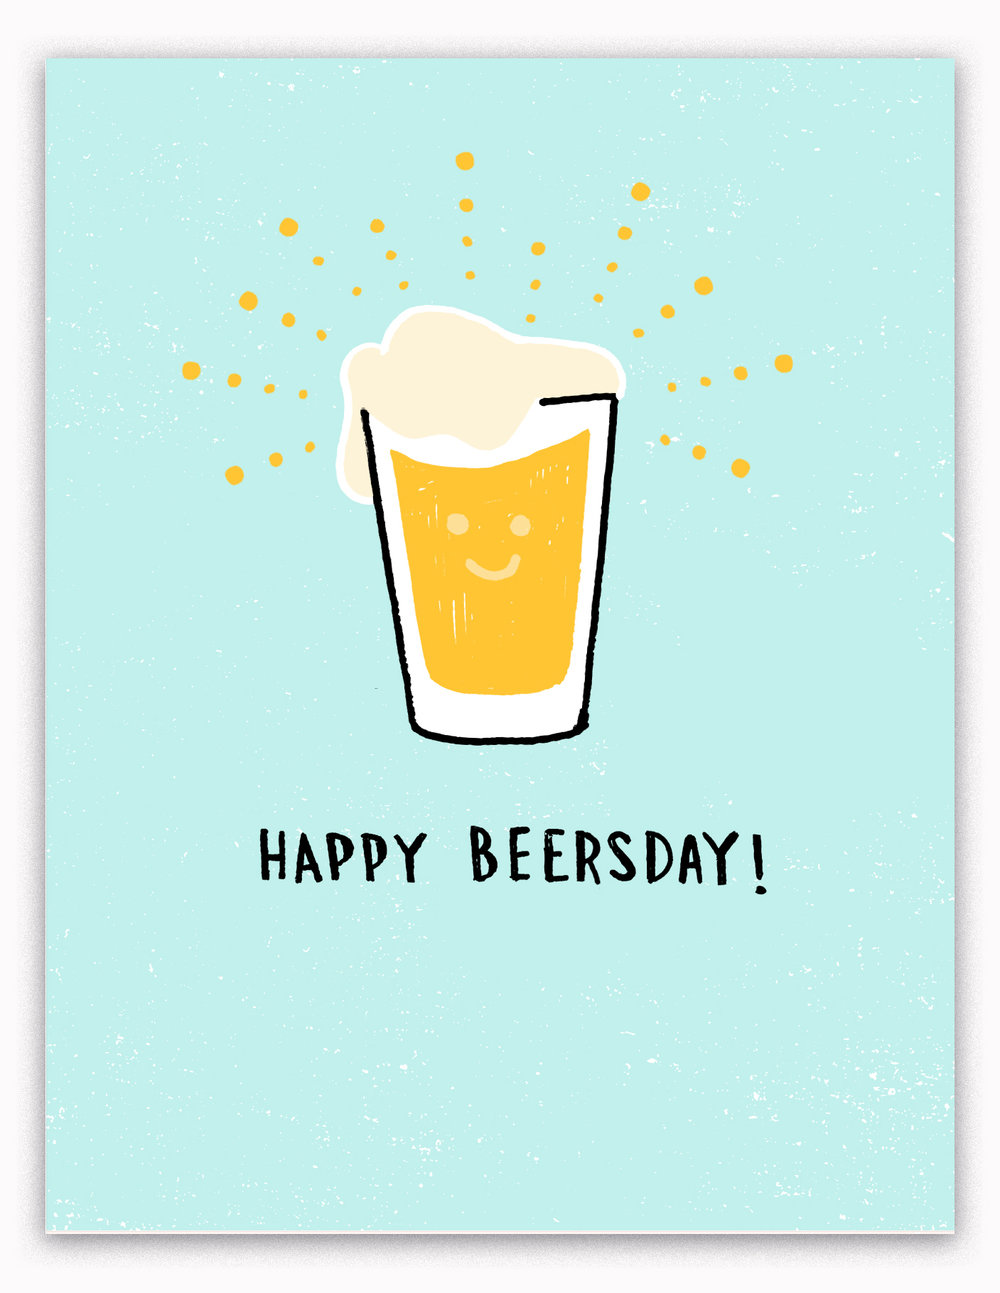 4b.happy beersday.jpg